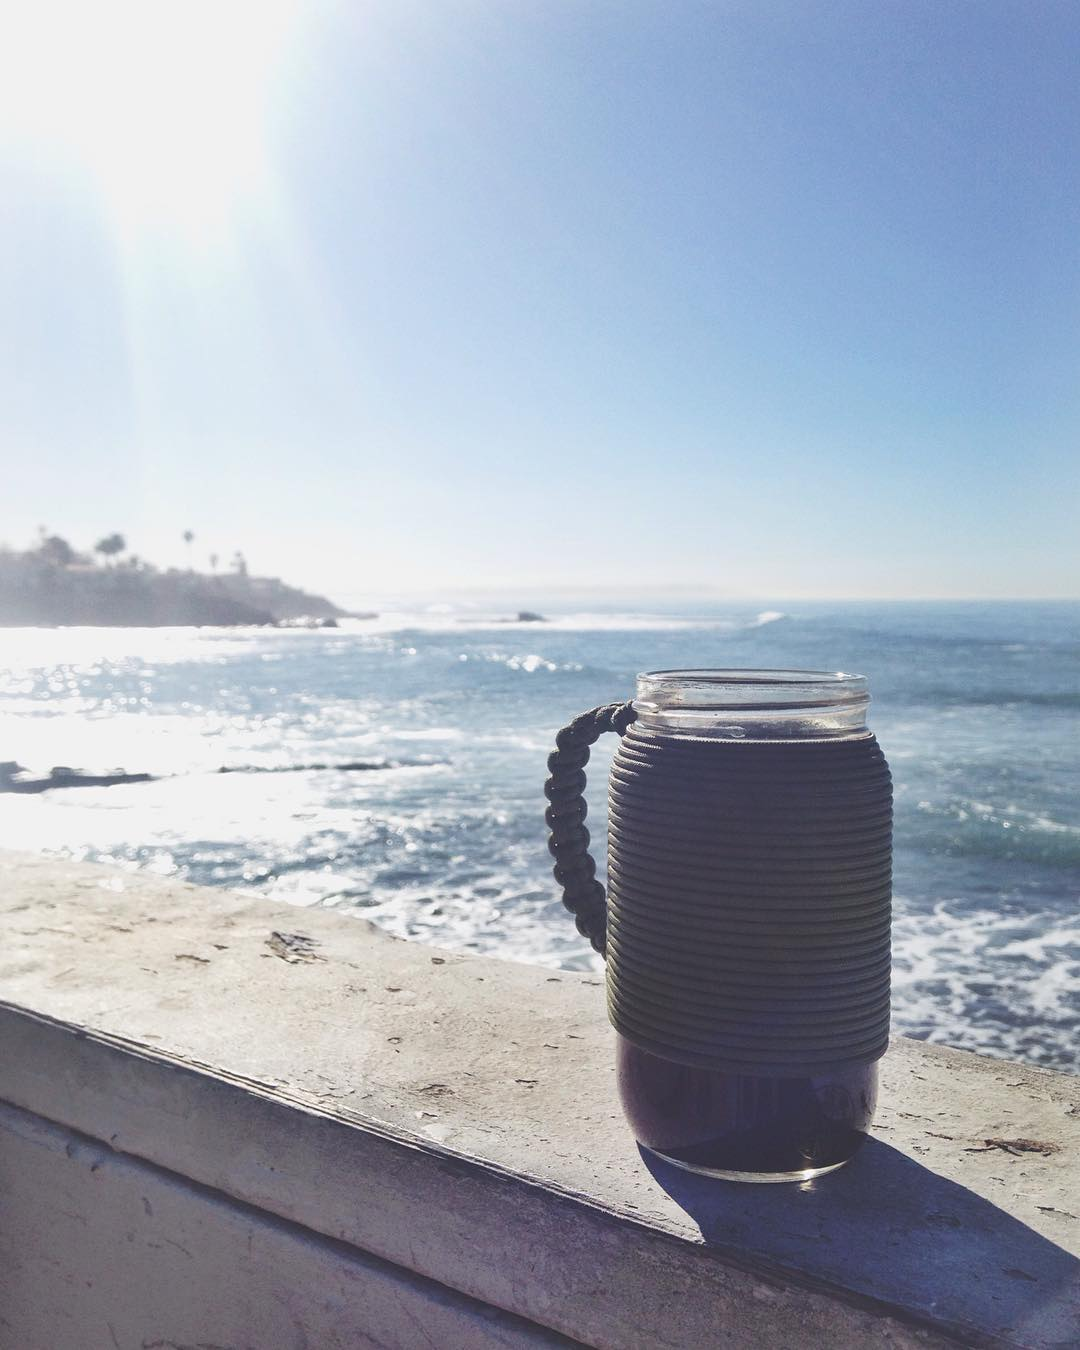 ~ Weekend Slides ~  On the search for waves this Saturday morning with a hot cup of coffee and the reusable Adventure mug.  Pick one up in our online shop for 15% off with the purchase of a 100% organic cotton crewneck sweater....